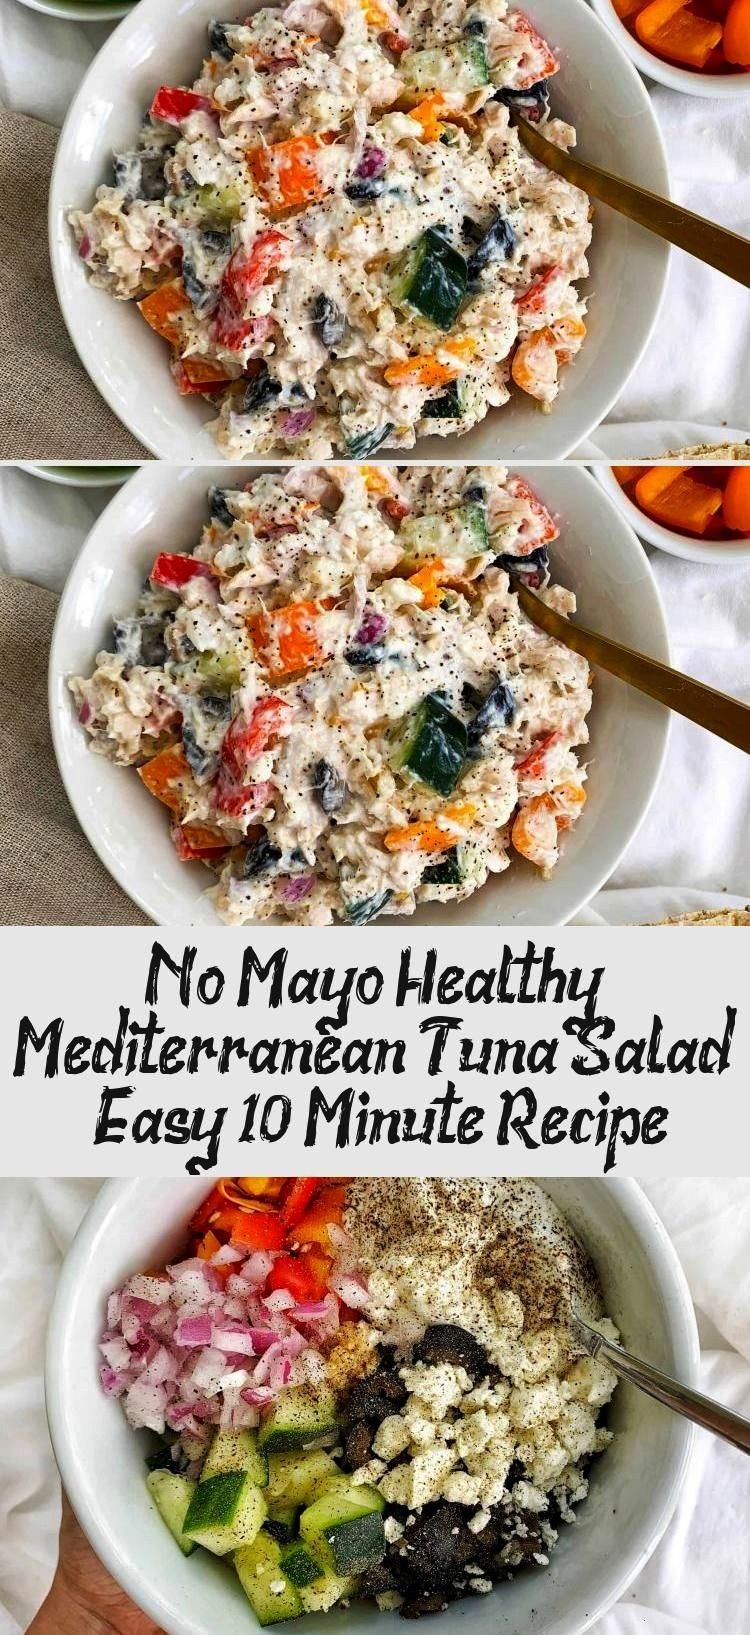 Healthy Mediterranean Tuna Salad recipe is high protein, mayo-free, packed with veggies, and ready